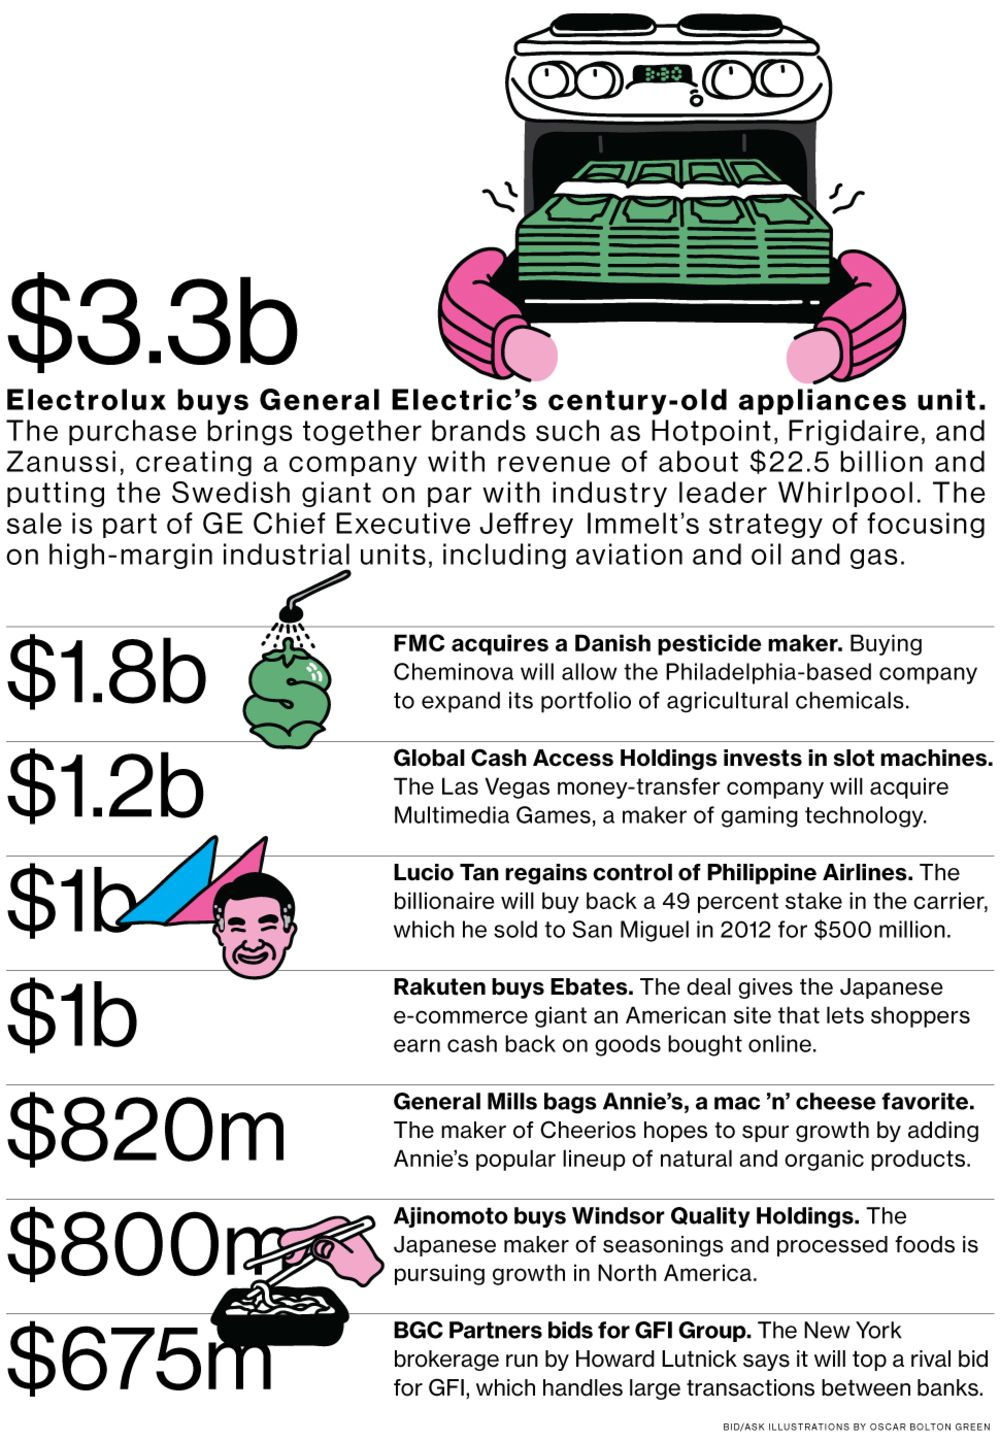 M&A News: Electrolux, GE, FMC, Cheminova, Global Cash Access - Bloomberg